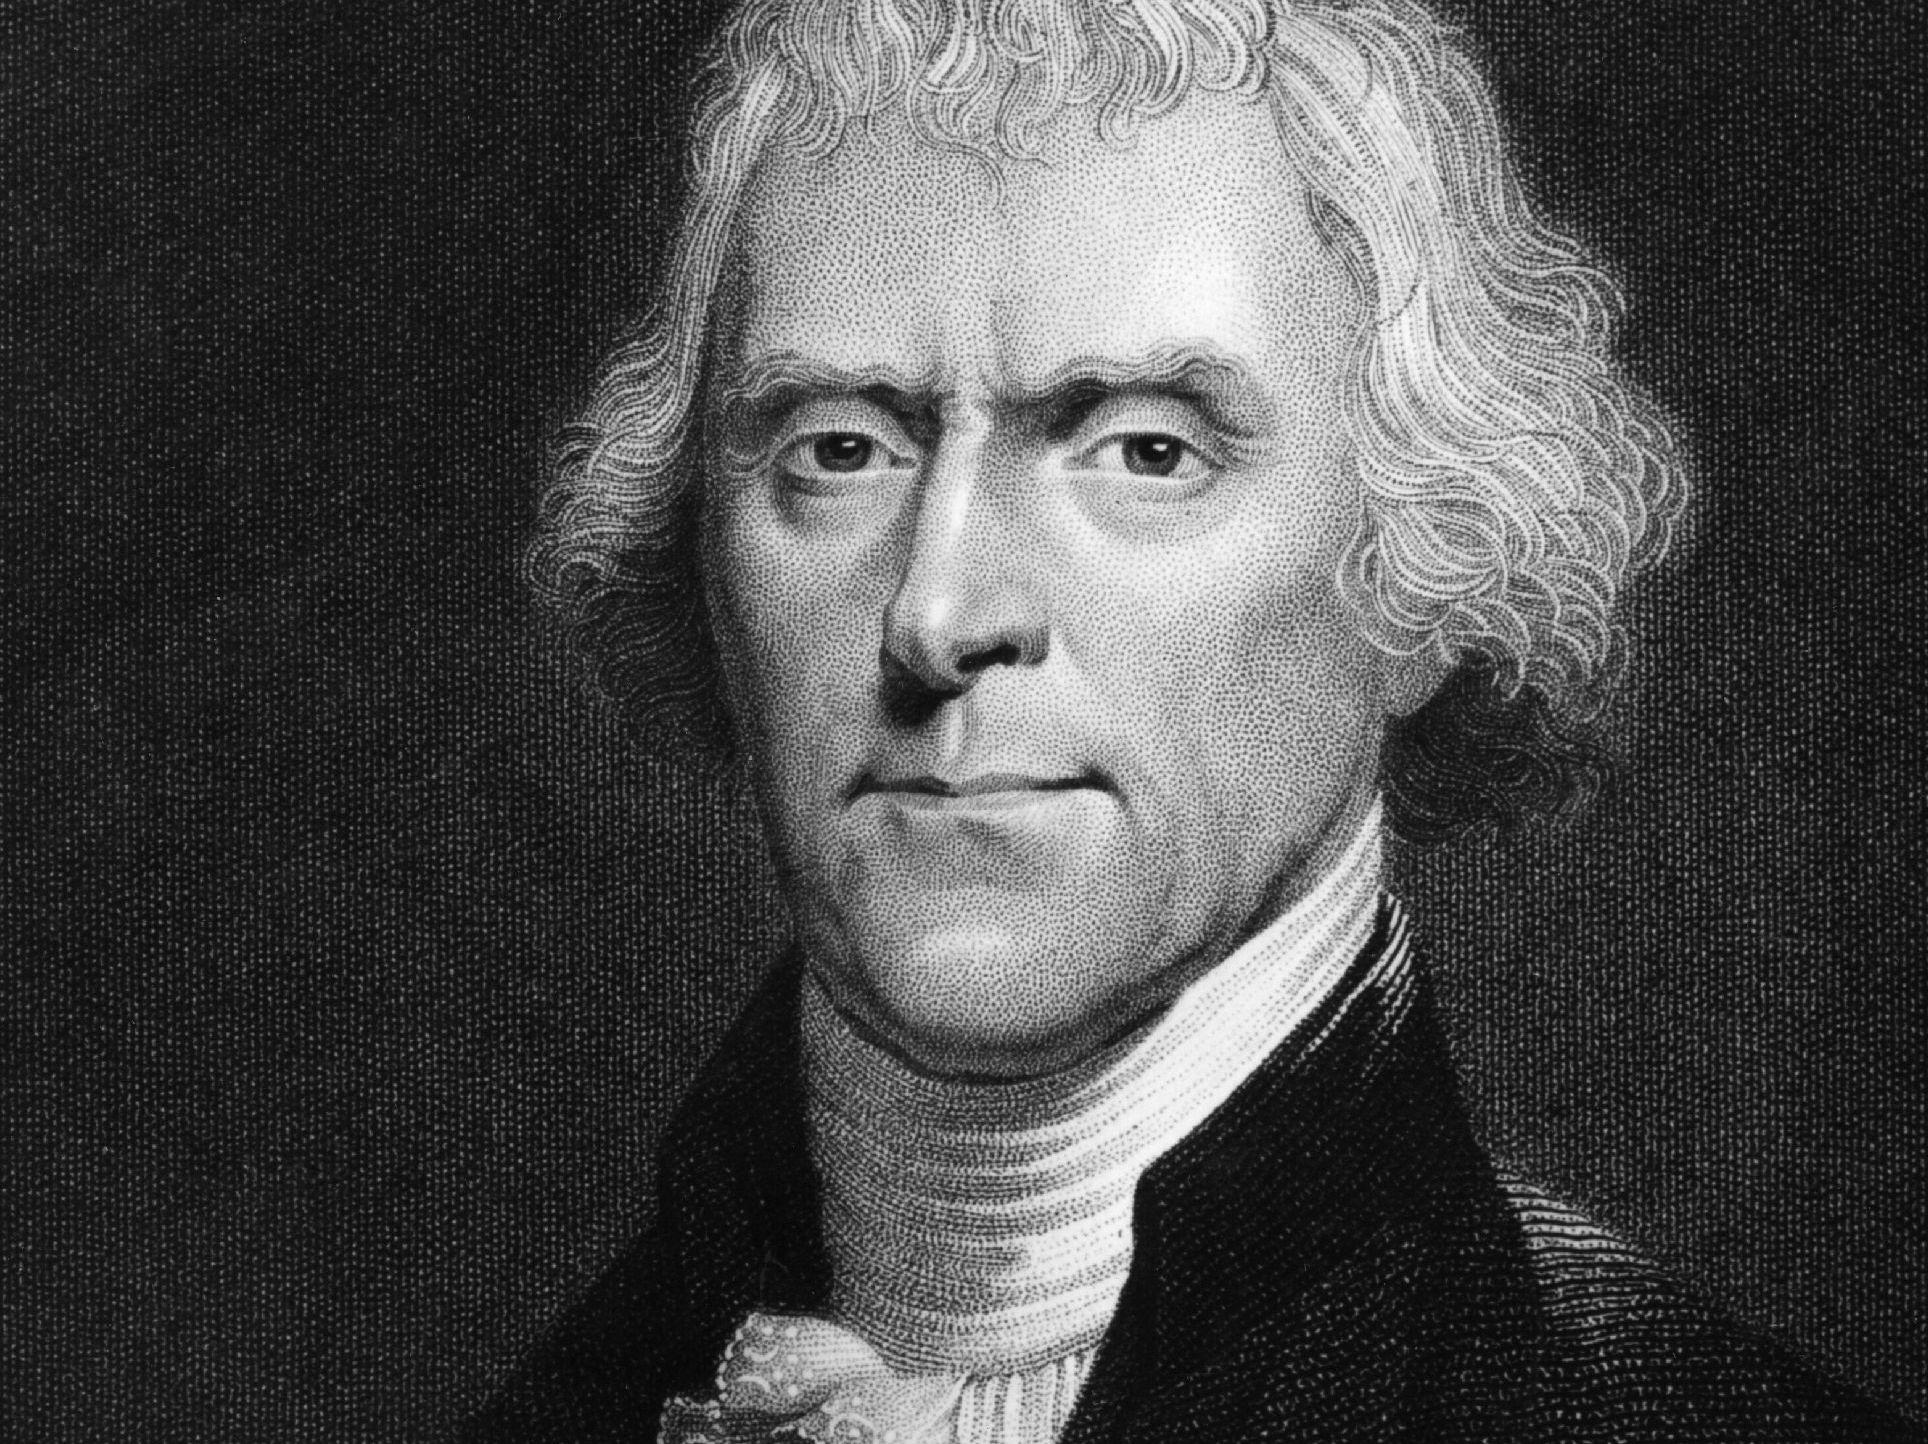 an analysis of thomas jeffersons views about freedom and equality In this, jefferson's closest friend and ally was the english pamphleteer thomas paine, who, unlike jefferson, continues to be celebrated by the left today the irony here is that without jefferson, paine would likely have faded into obscurity.